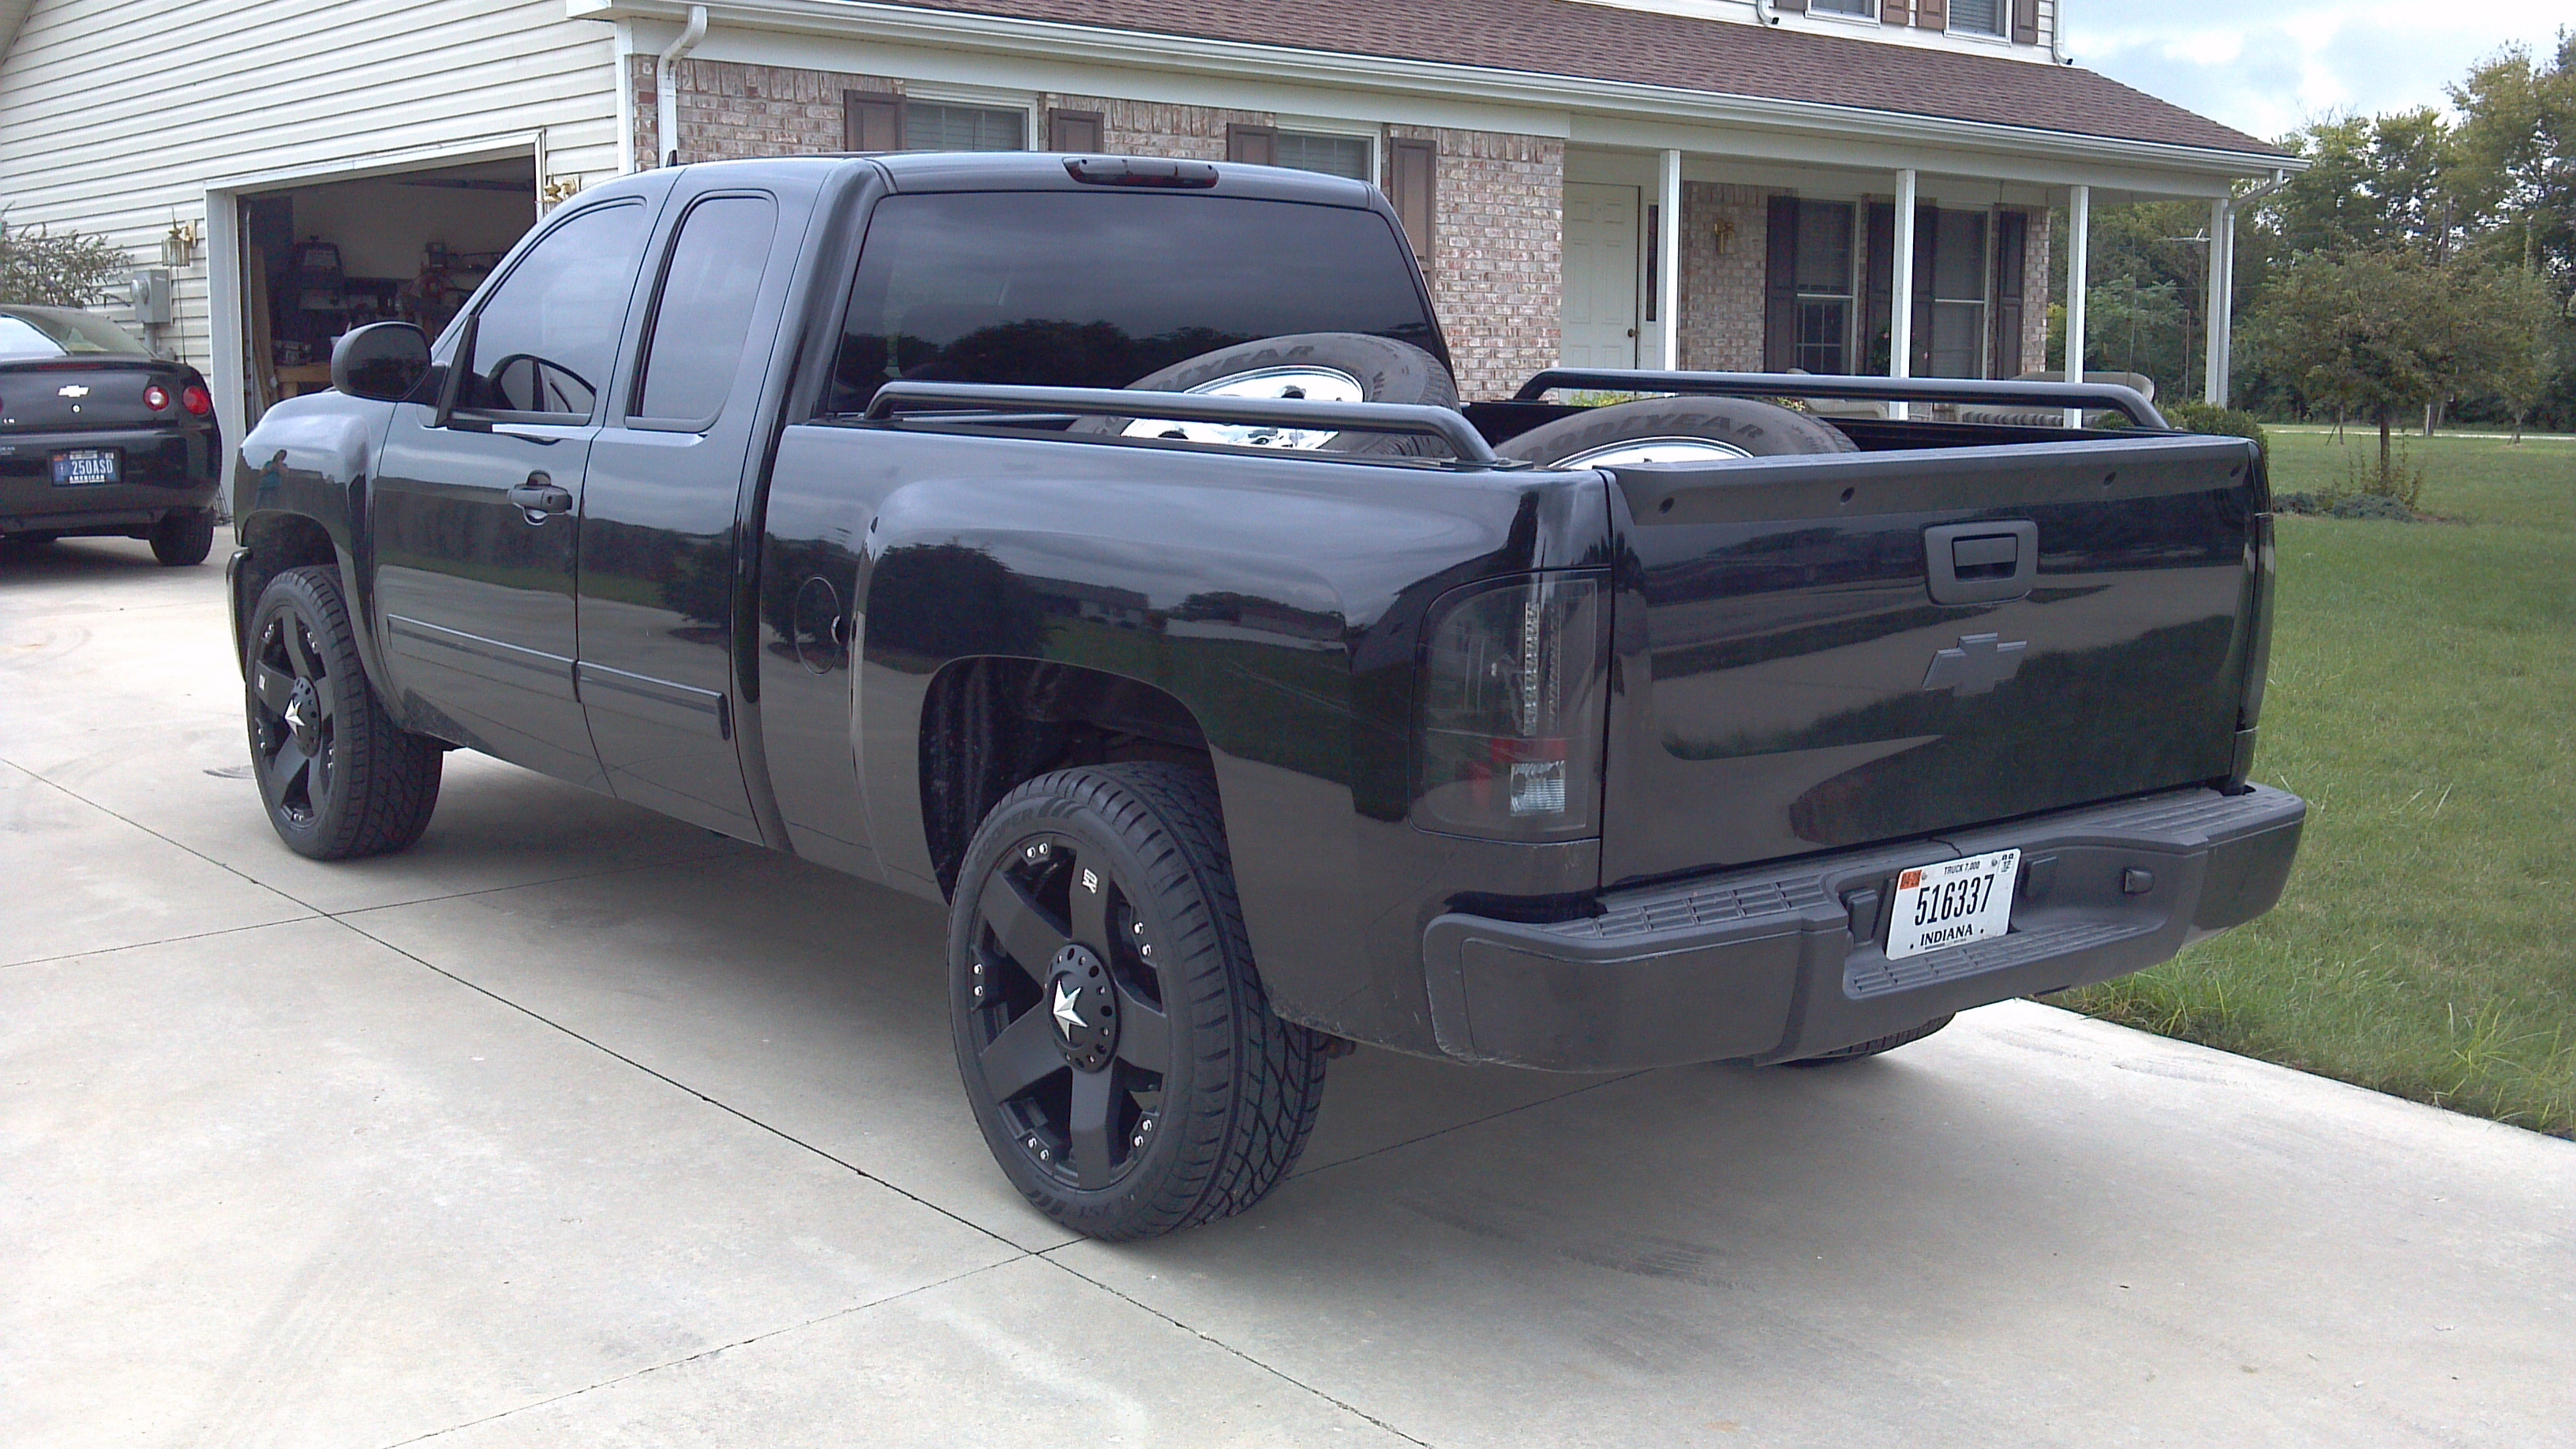 jaronfreed 2011 chevrolet silverado 1500 extended cab specs photos modification info at cardomain. Black Bedroom Furniture Sets. Home Design Ideas